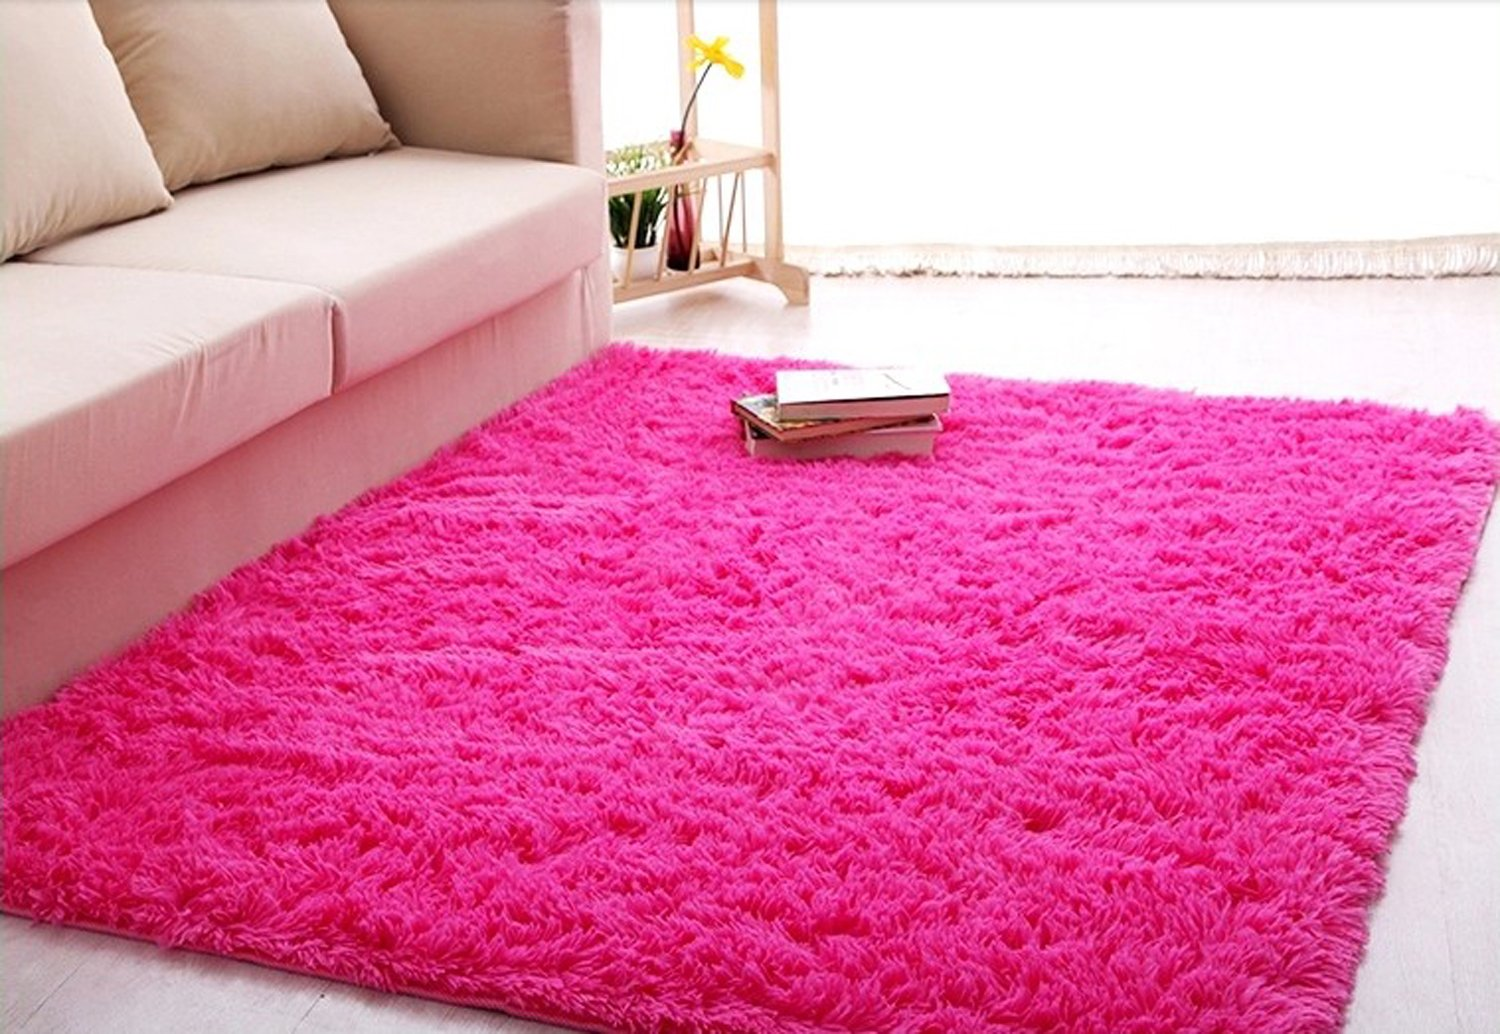 10 Foot Square Rug Part - 25: Amazon.com: Forever Lover Soft Indoor Morden Shaggy Area Rug Pad, 2.5 X 5- Feet, Hot Pink: Kitchen U0026 Dining